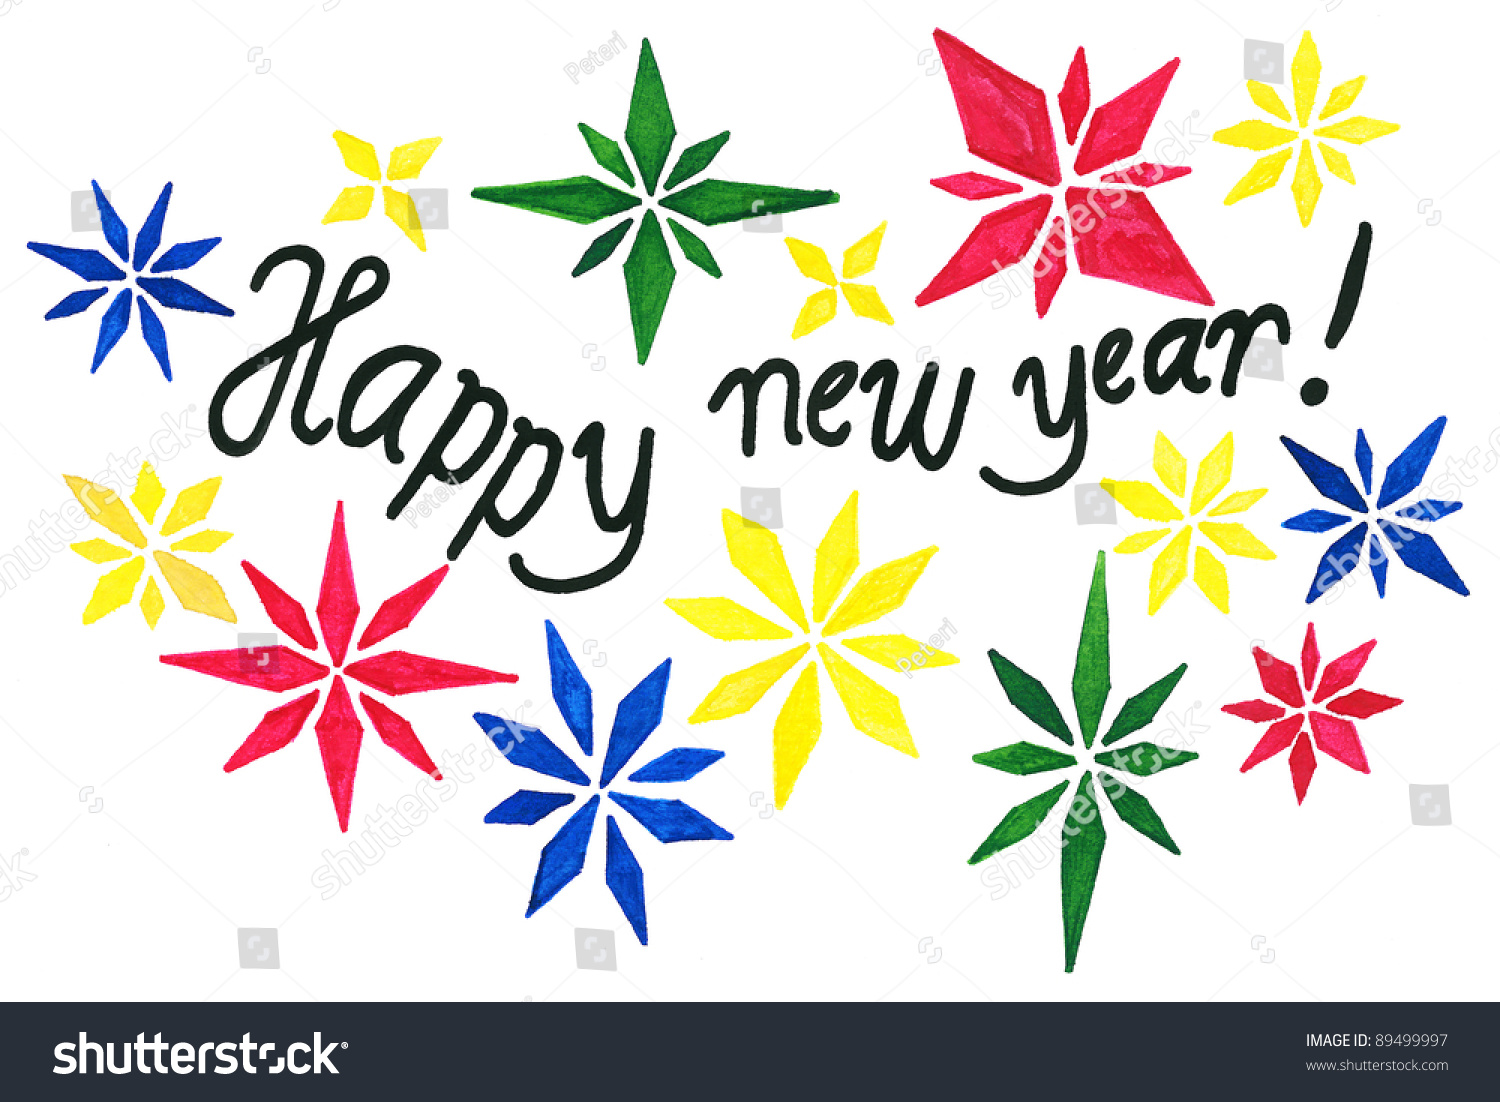 Hand Drawing Happy New Year Greeting Stock Illustration 89499997 ...